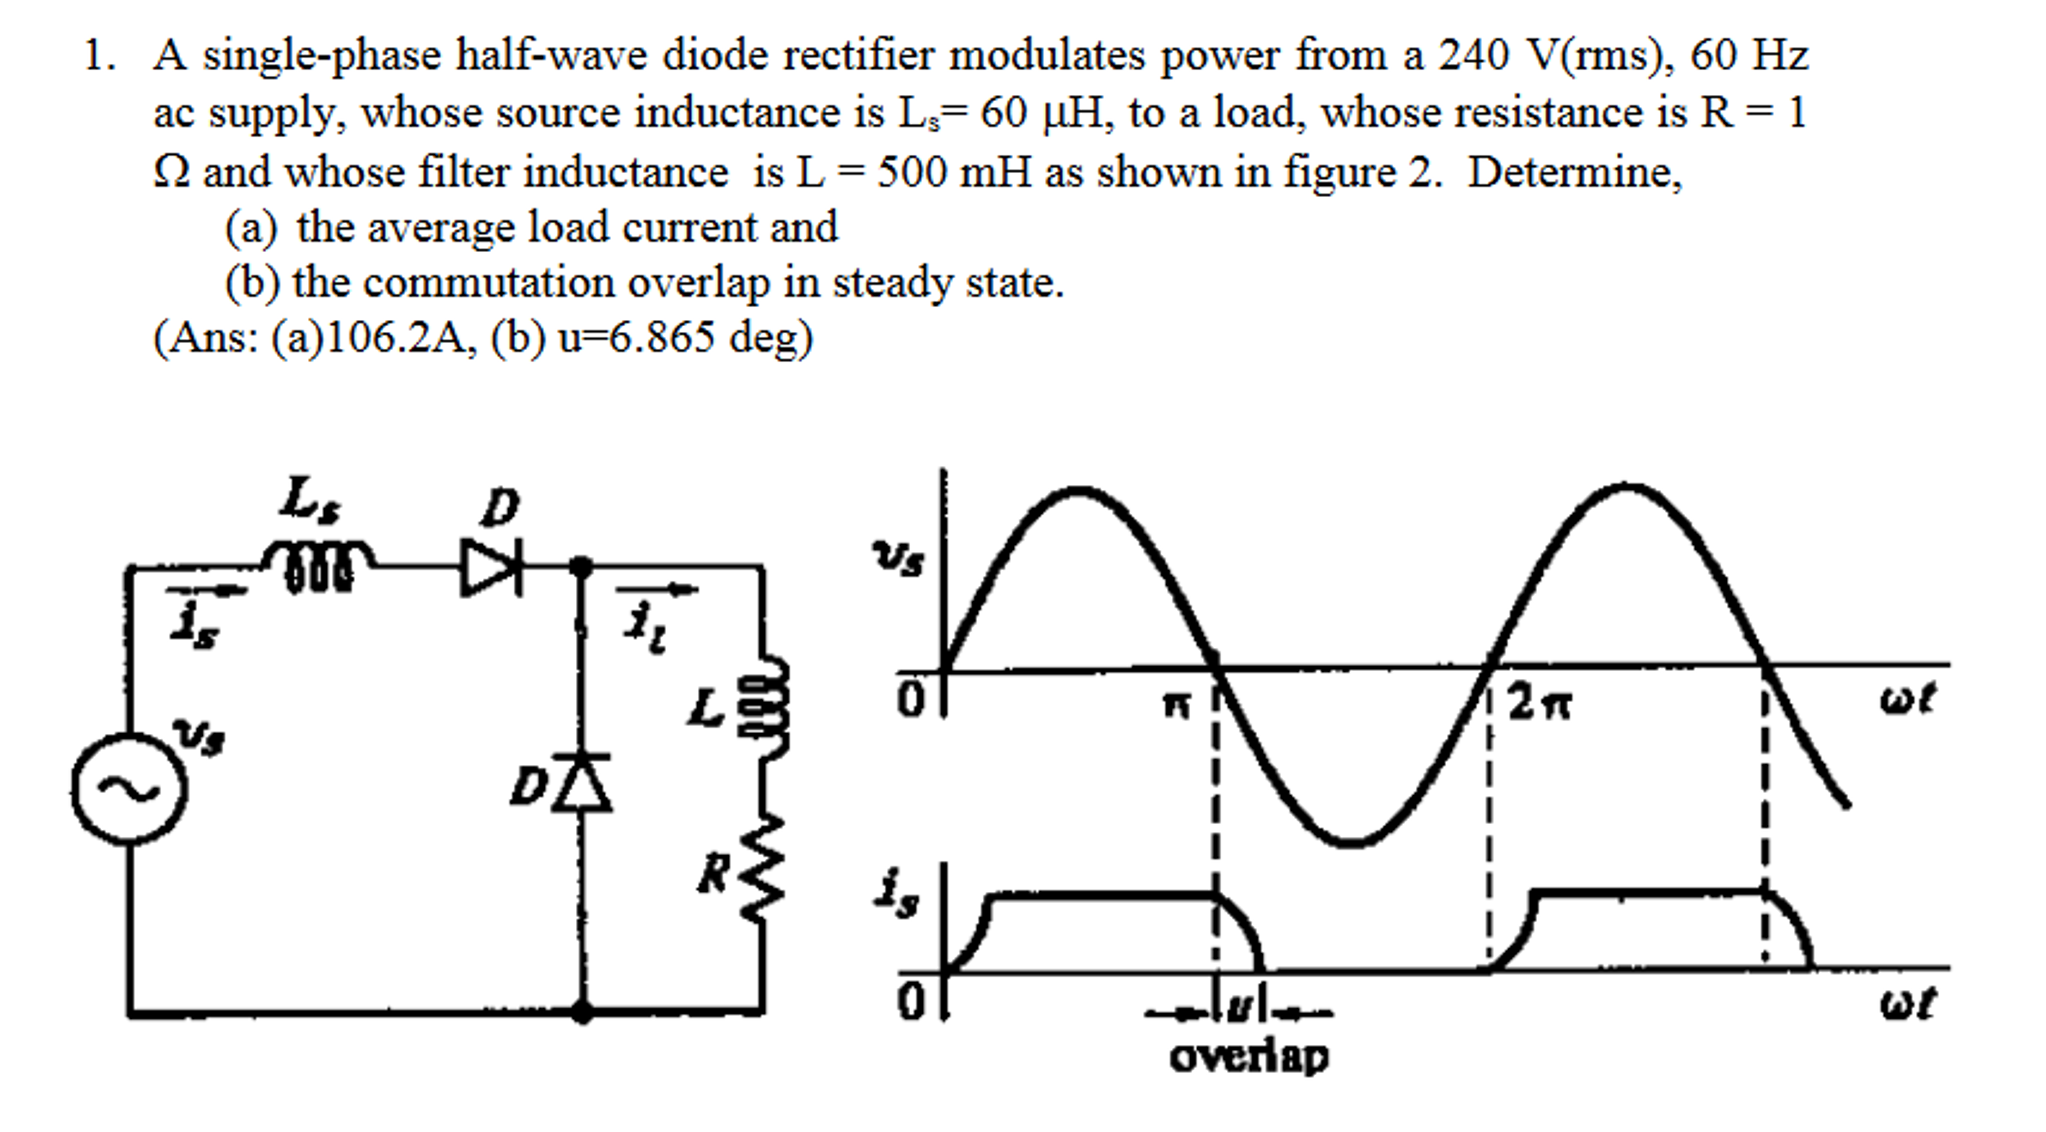 Electrical engineering archive november 02 2016 chegg a single phase half wave diode rectifier modulates falaconquin